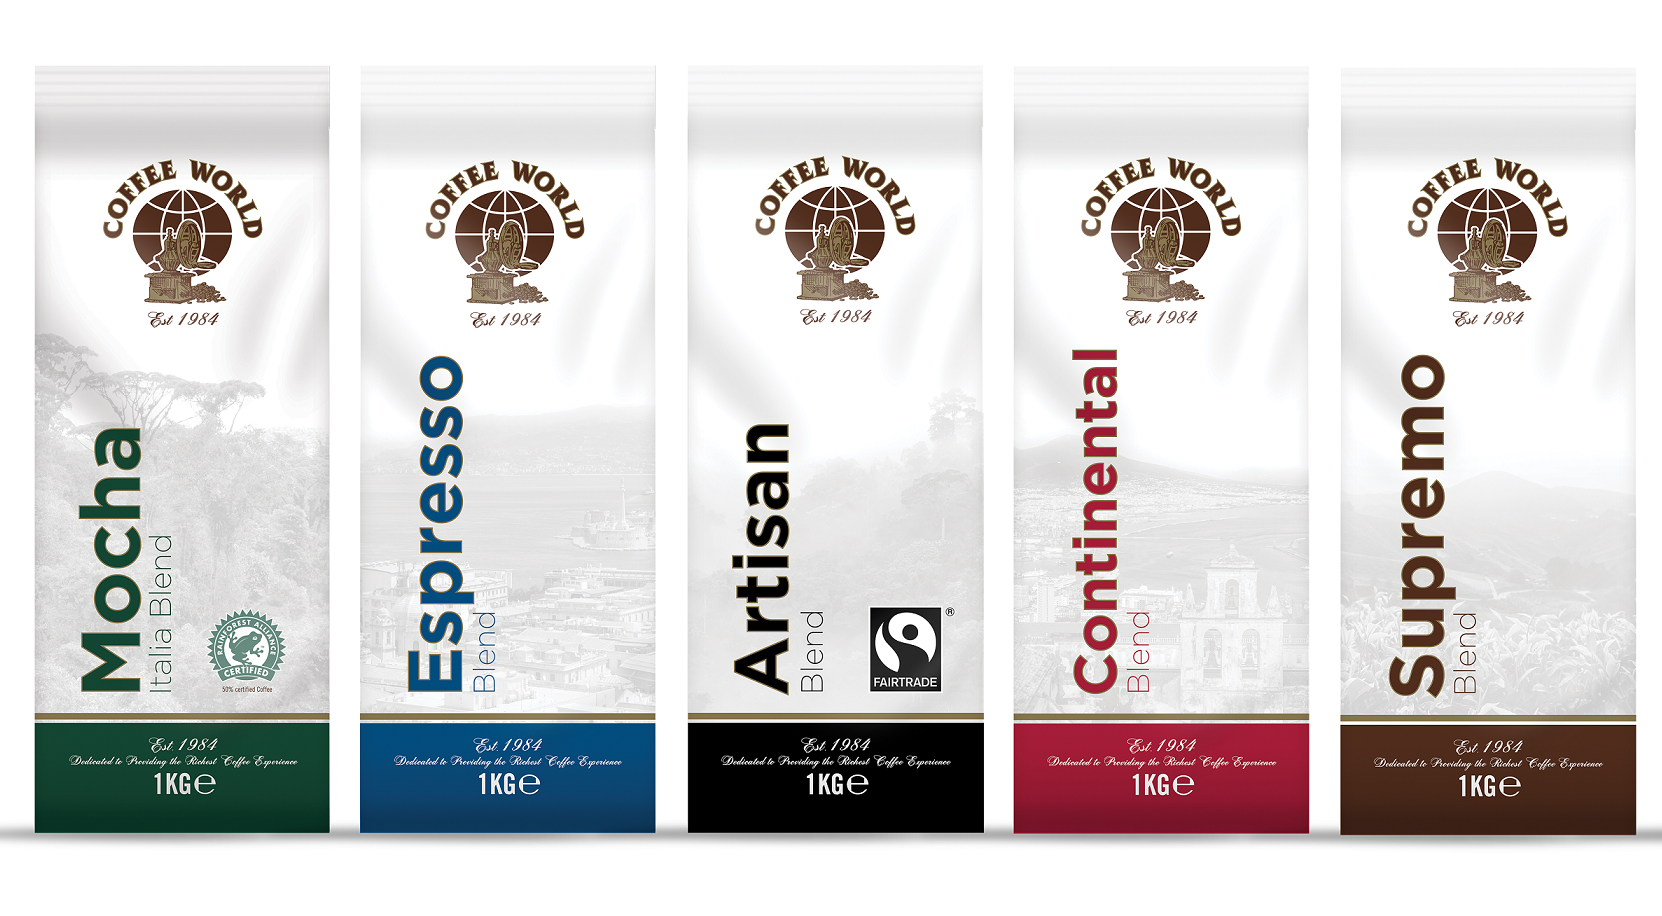 Coffee World Espresso Blends